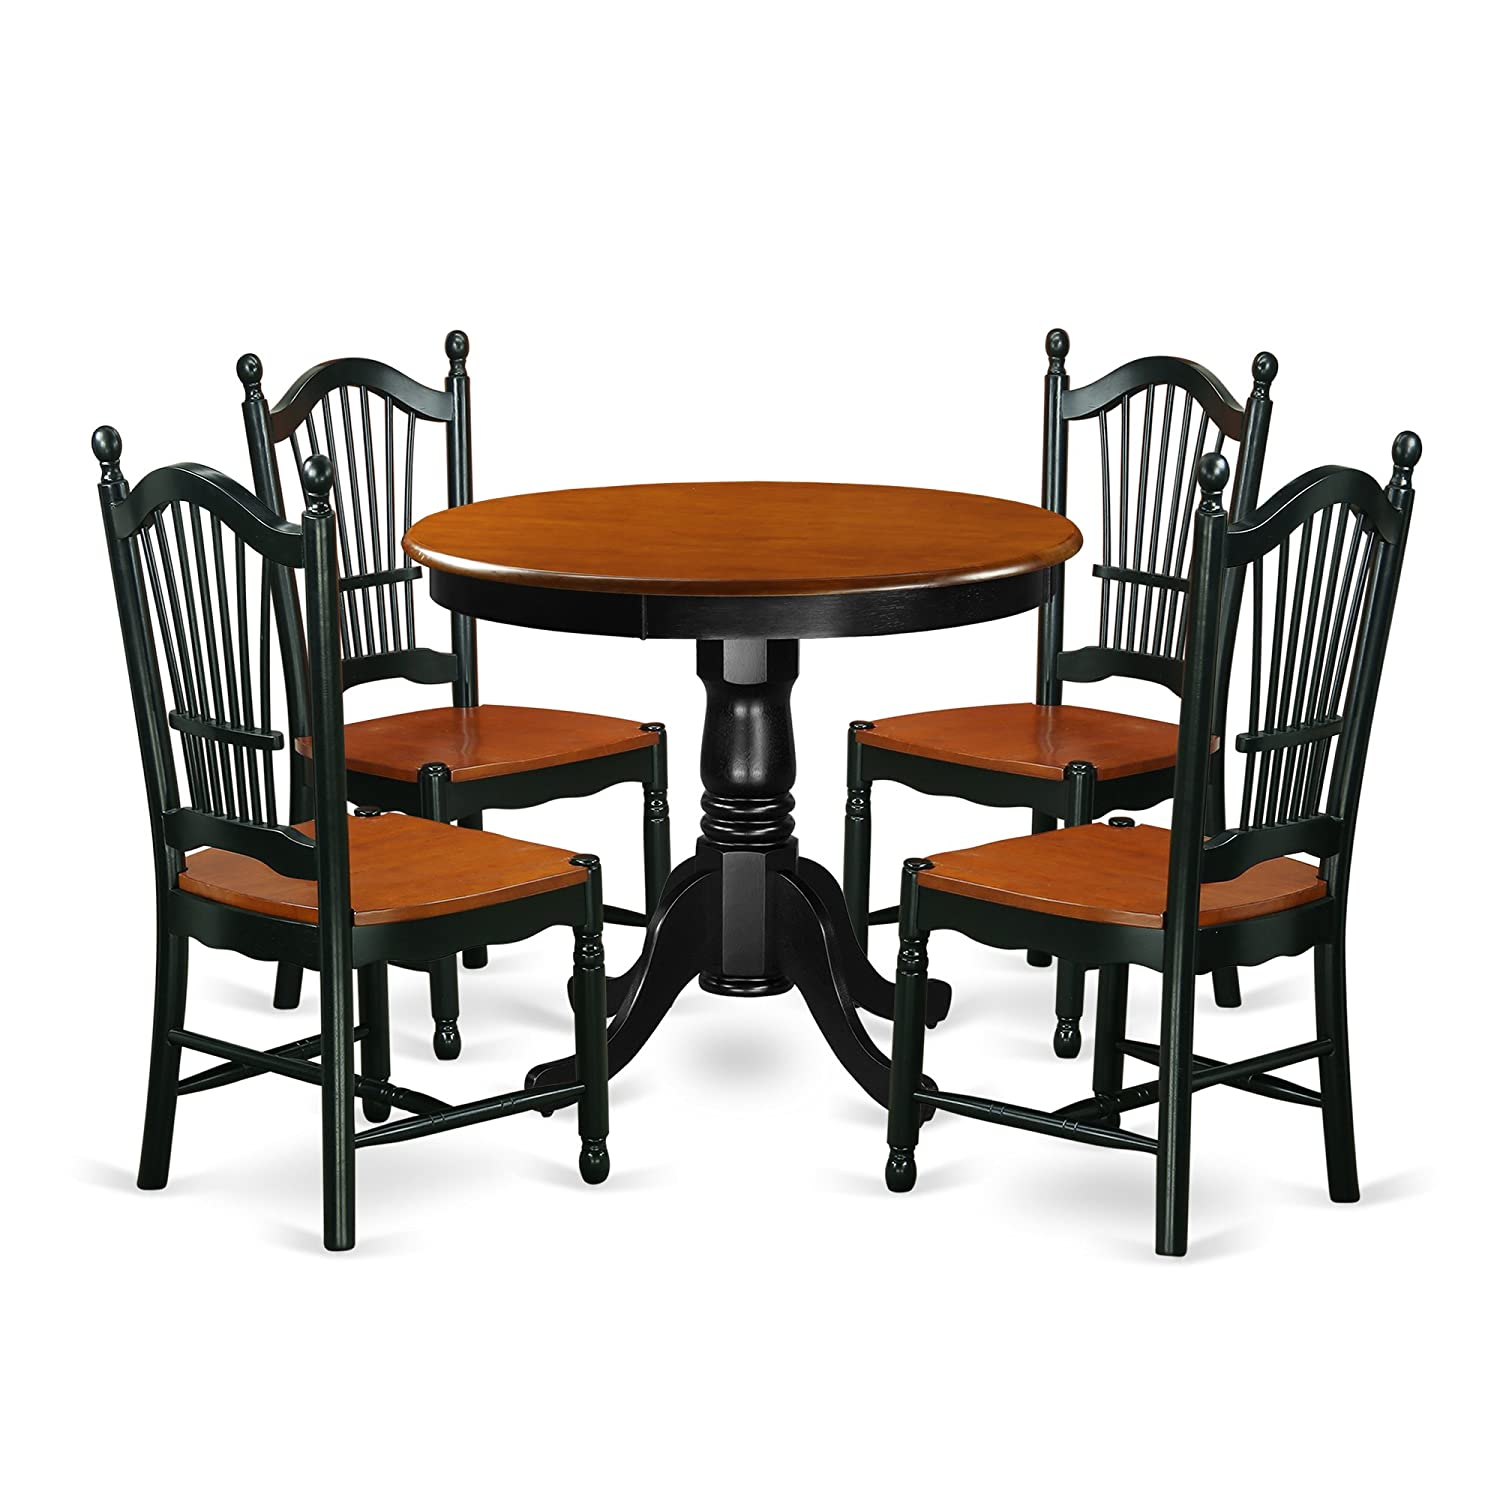 East West Furniture ANDO5-BCH-W 5 Piece Dining Set Table & 4 Wood Seat Kitchen Chairs, Black/Cherry